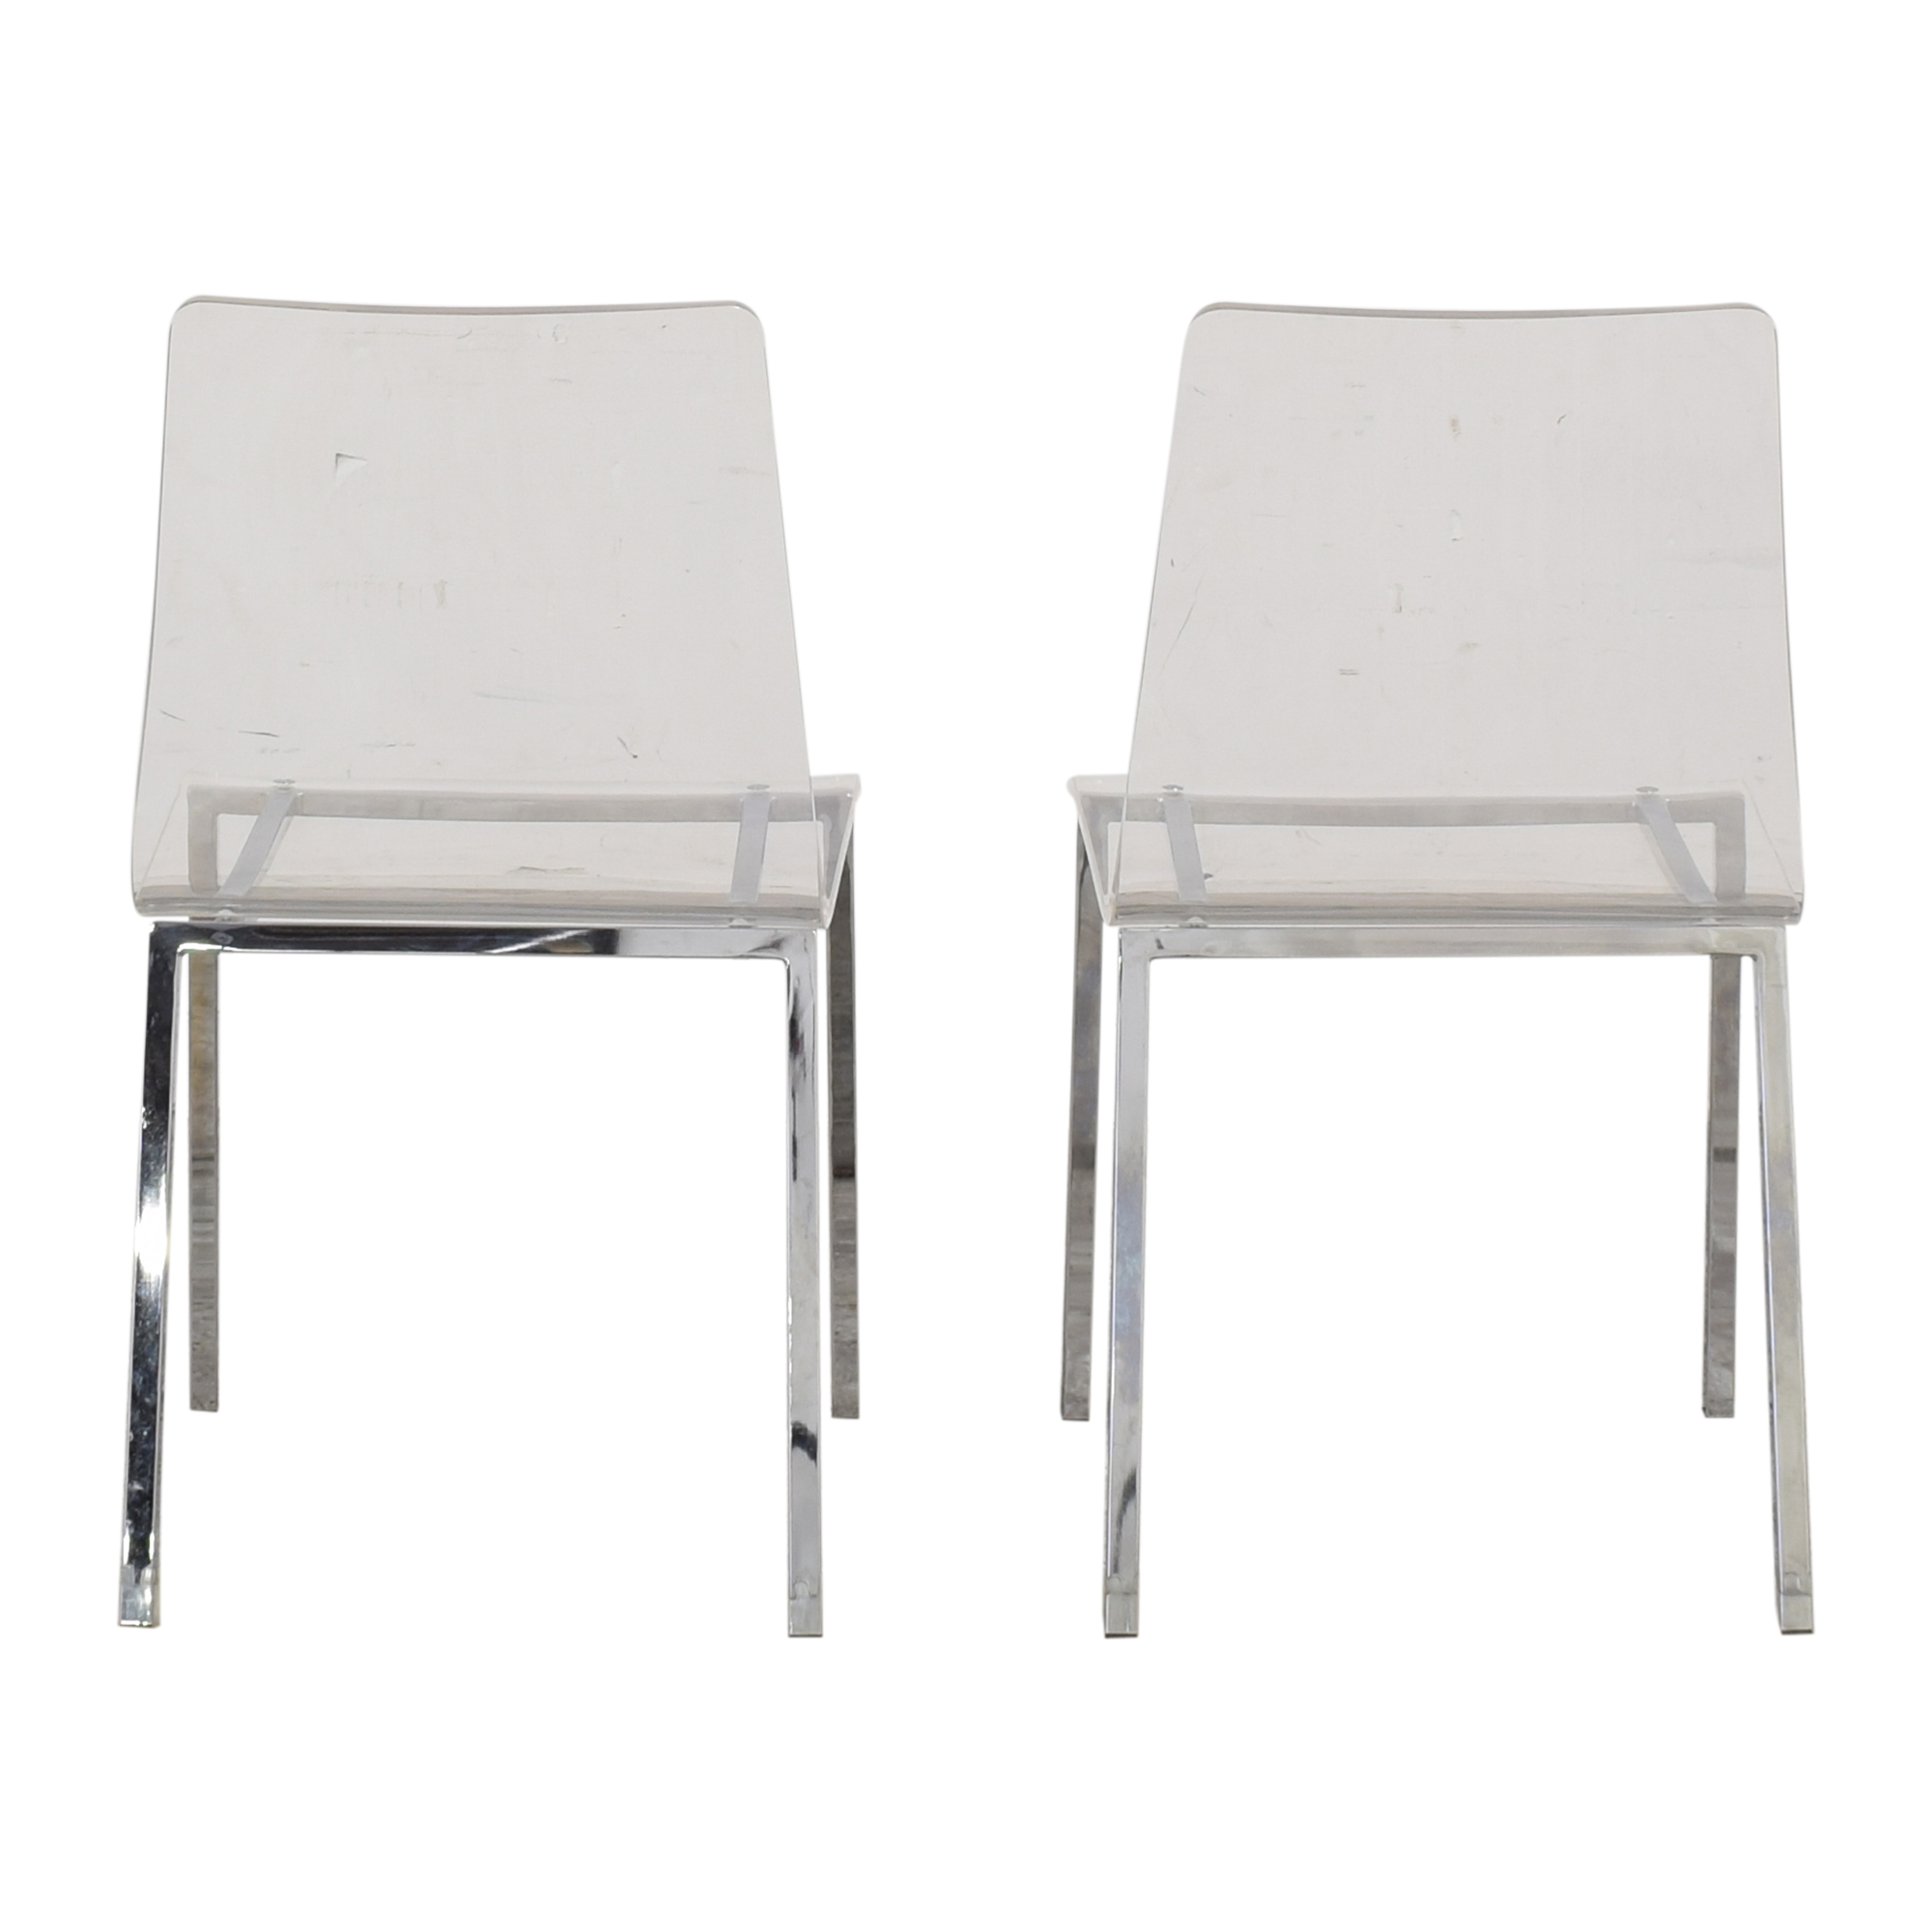 shop CB2 Vapor Acrylic Clear Dining Room Chairs CB2 Chairs